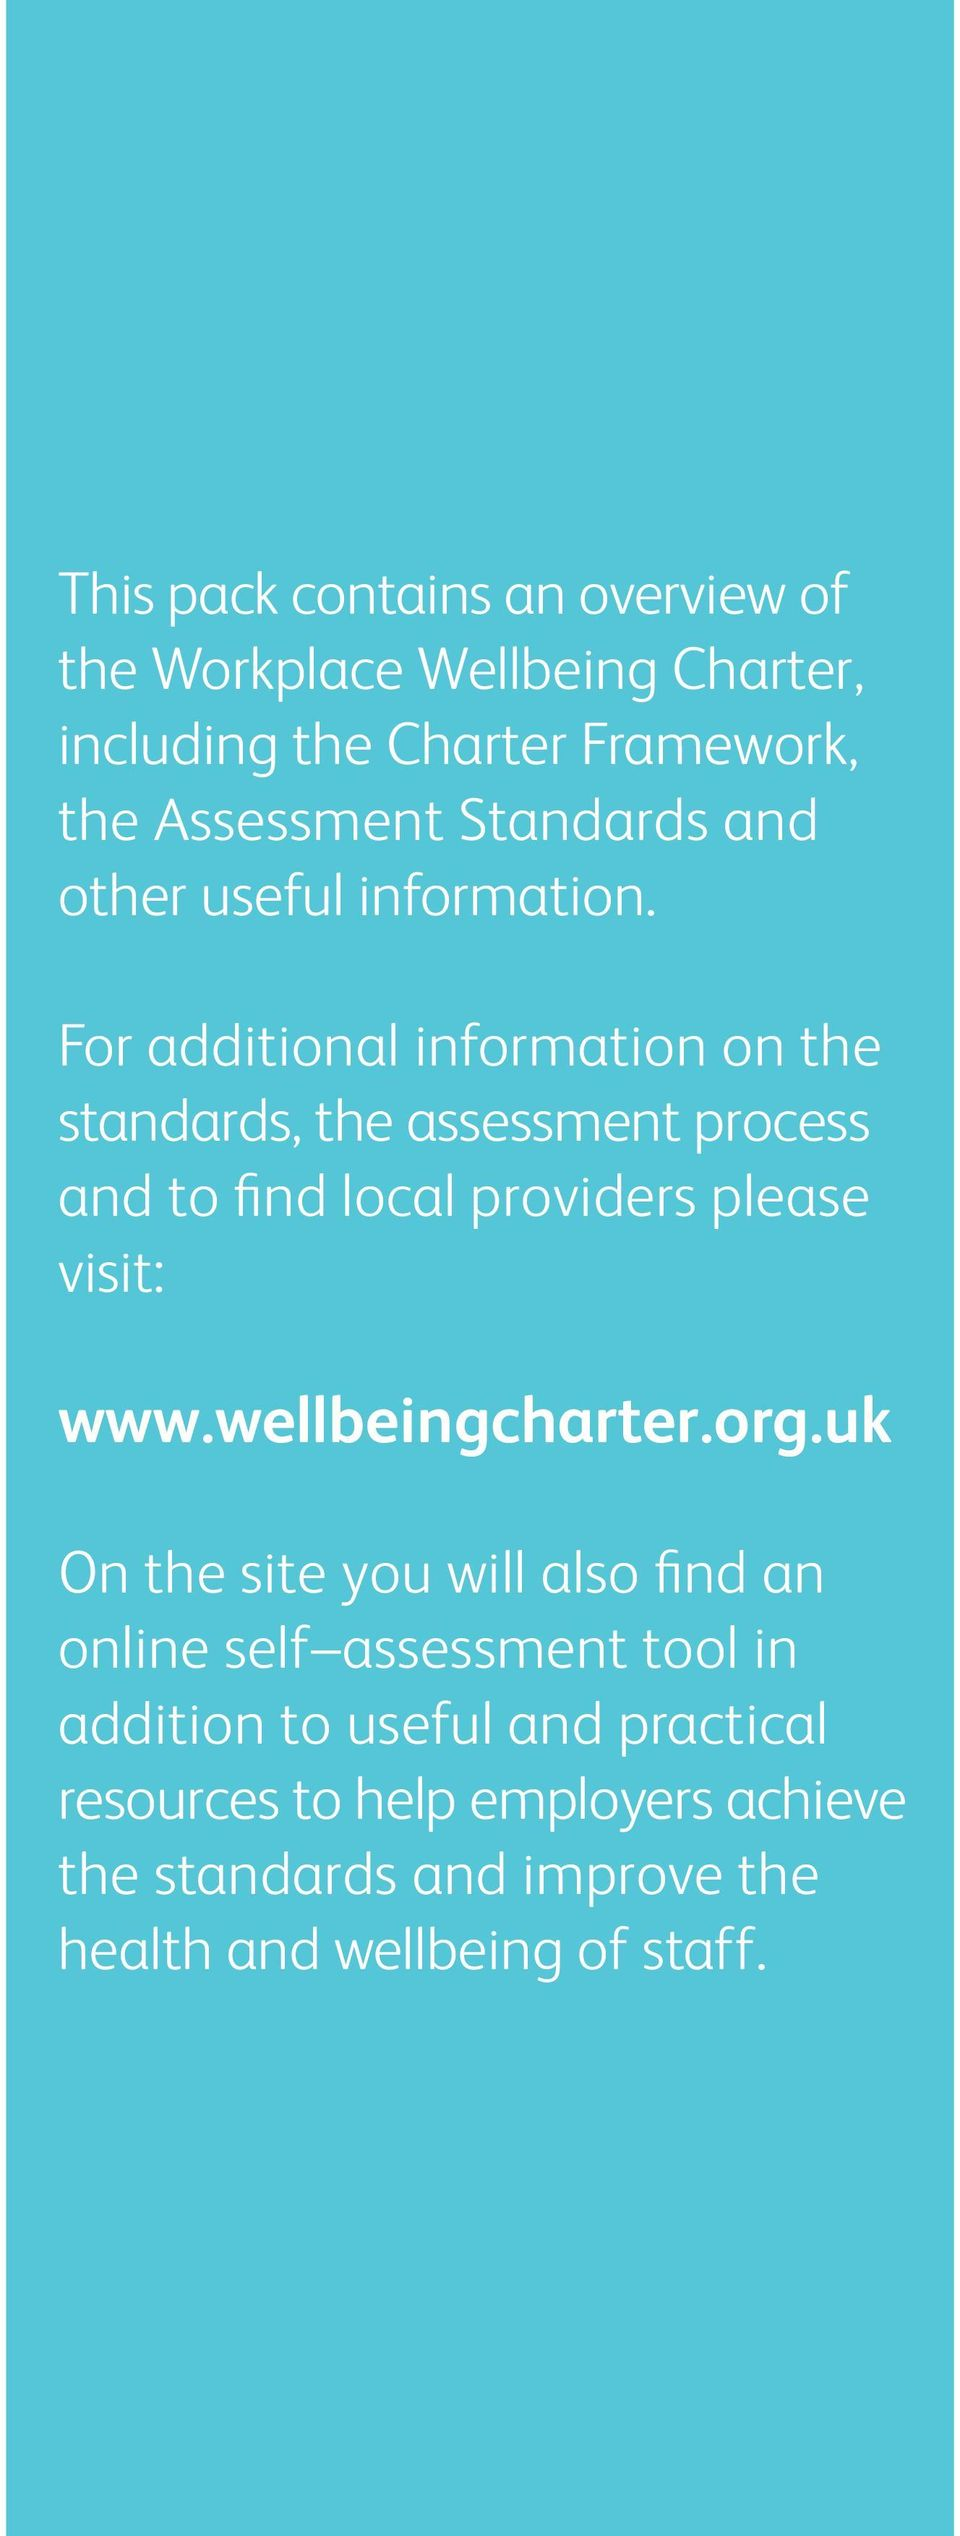 For additional information on the standards, the assessment process and to find local providers please visit: www.